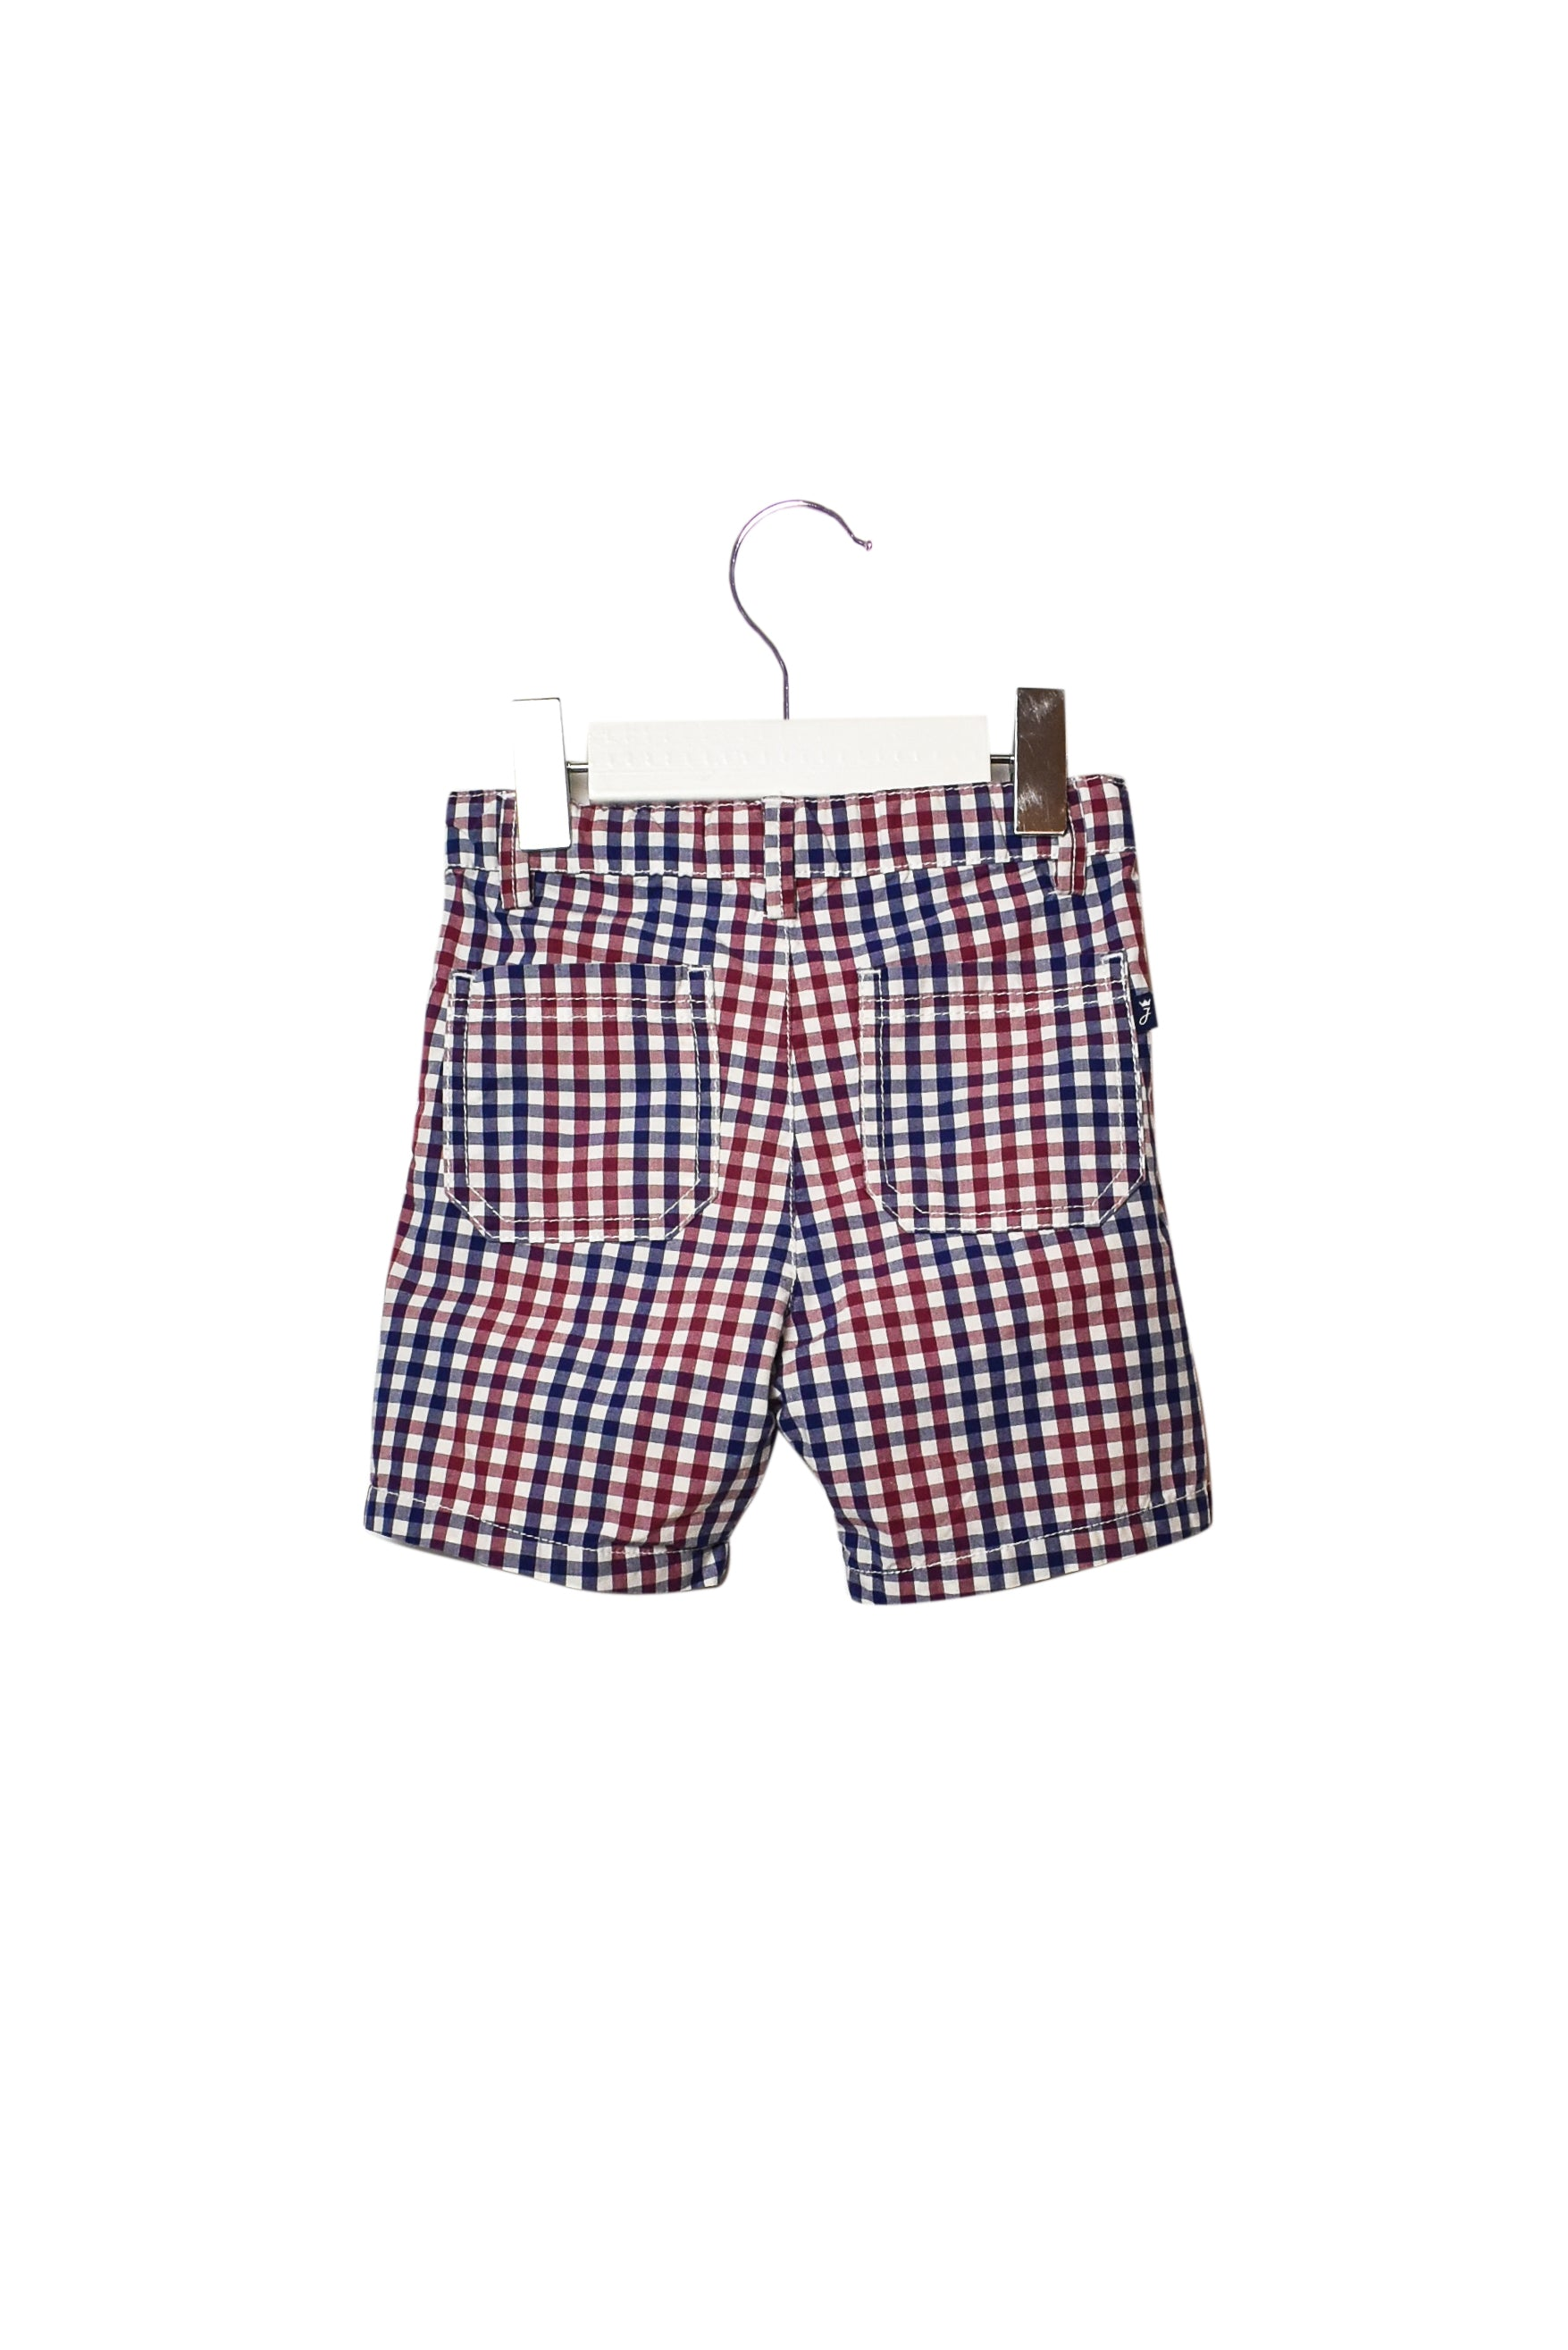 10008590 Jacadi Baby~Shorts 12M at Retykle